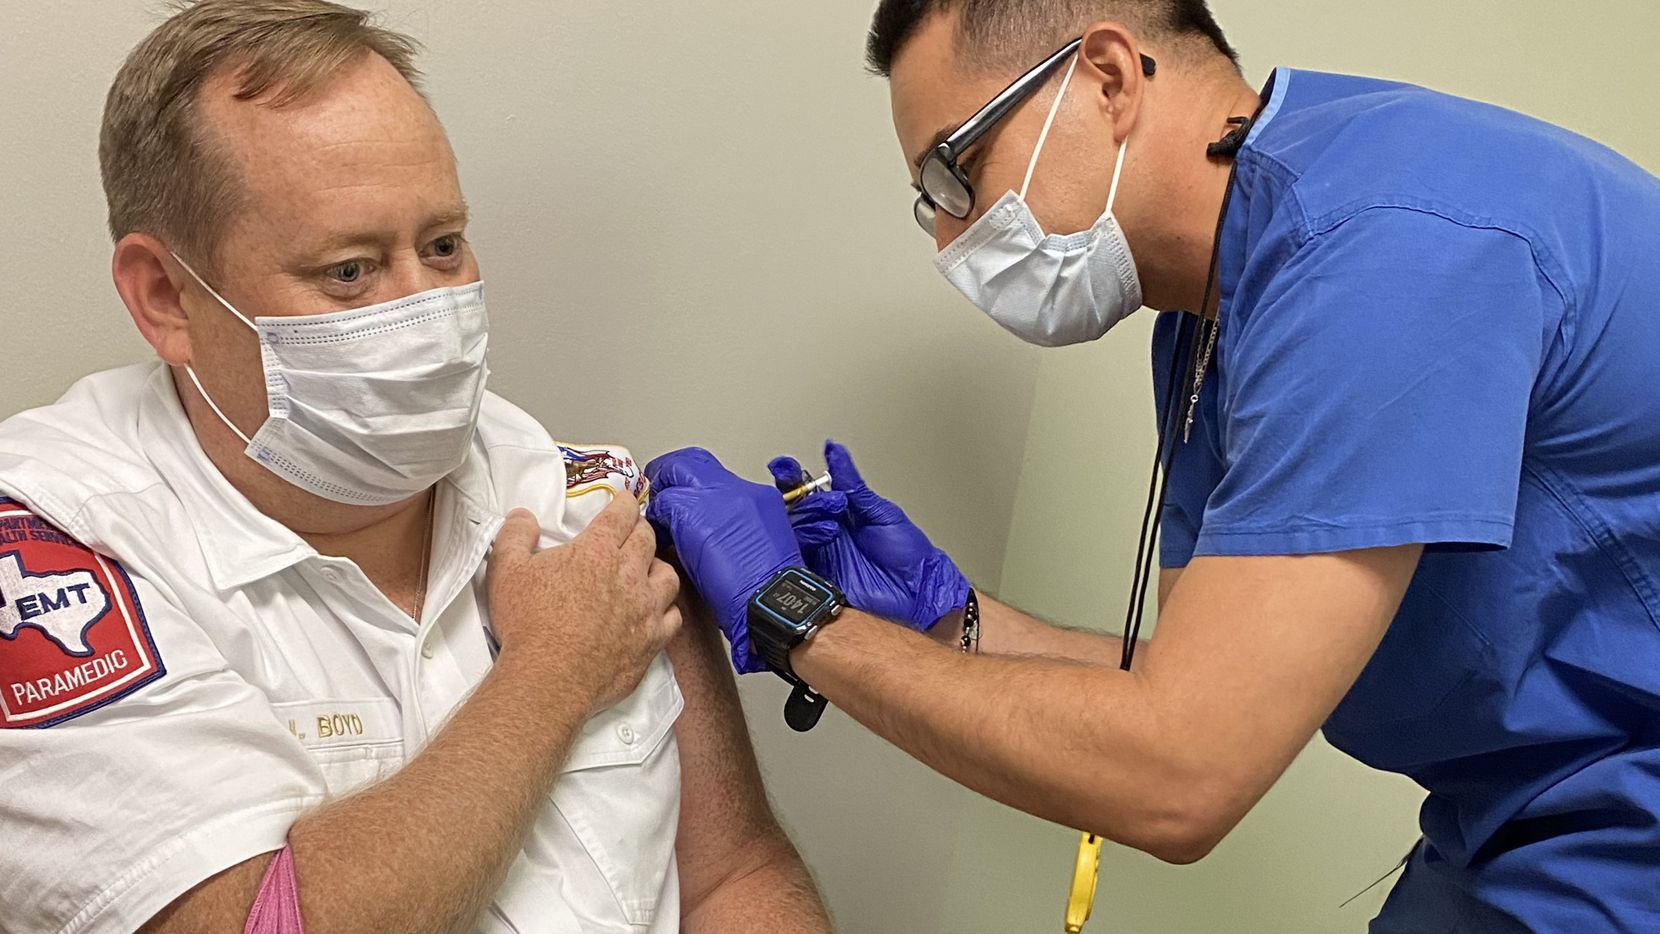 Allen Fire Chief Jonathan Boyd has volunteered for a COVID-19 vaccine study.